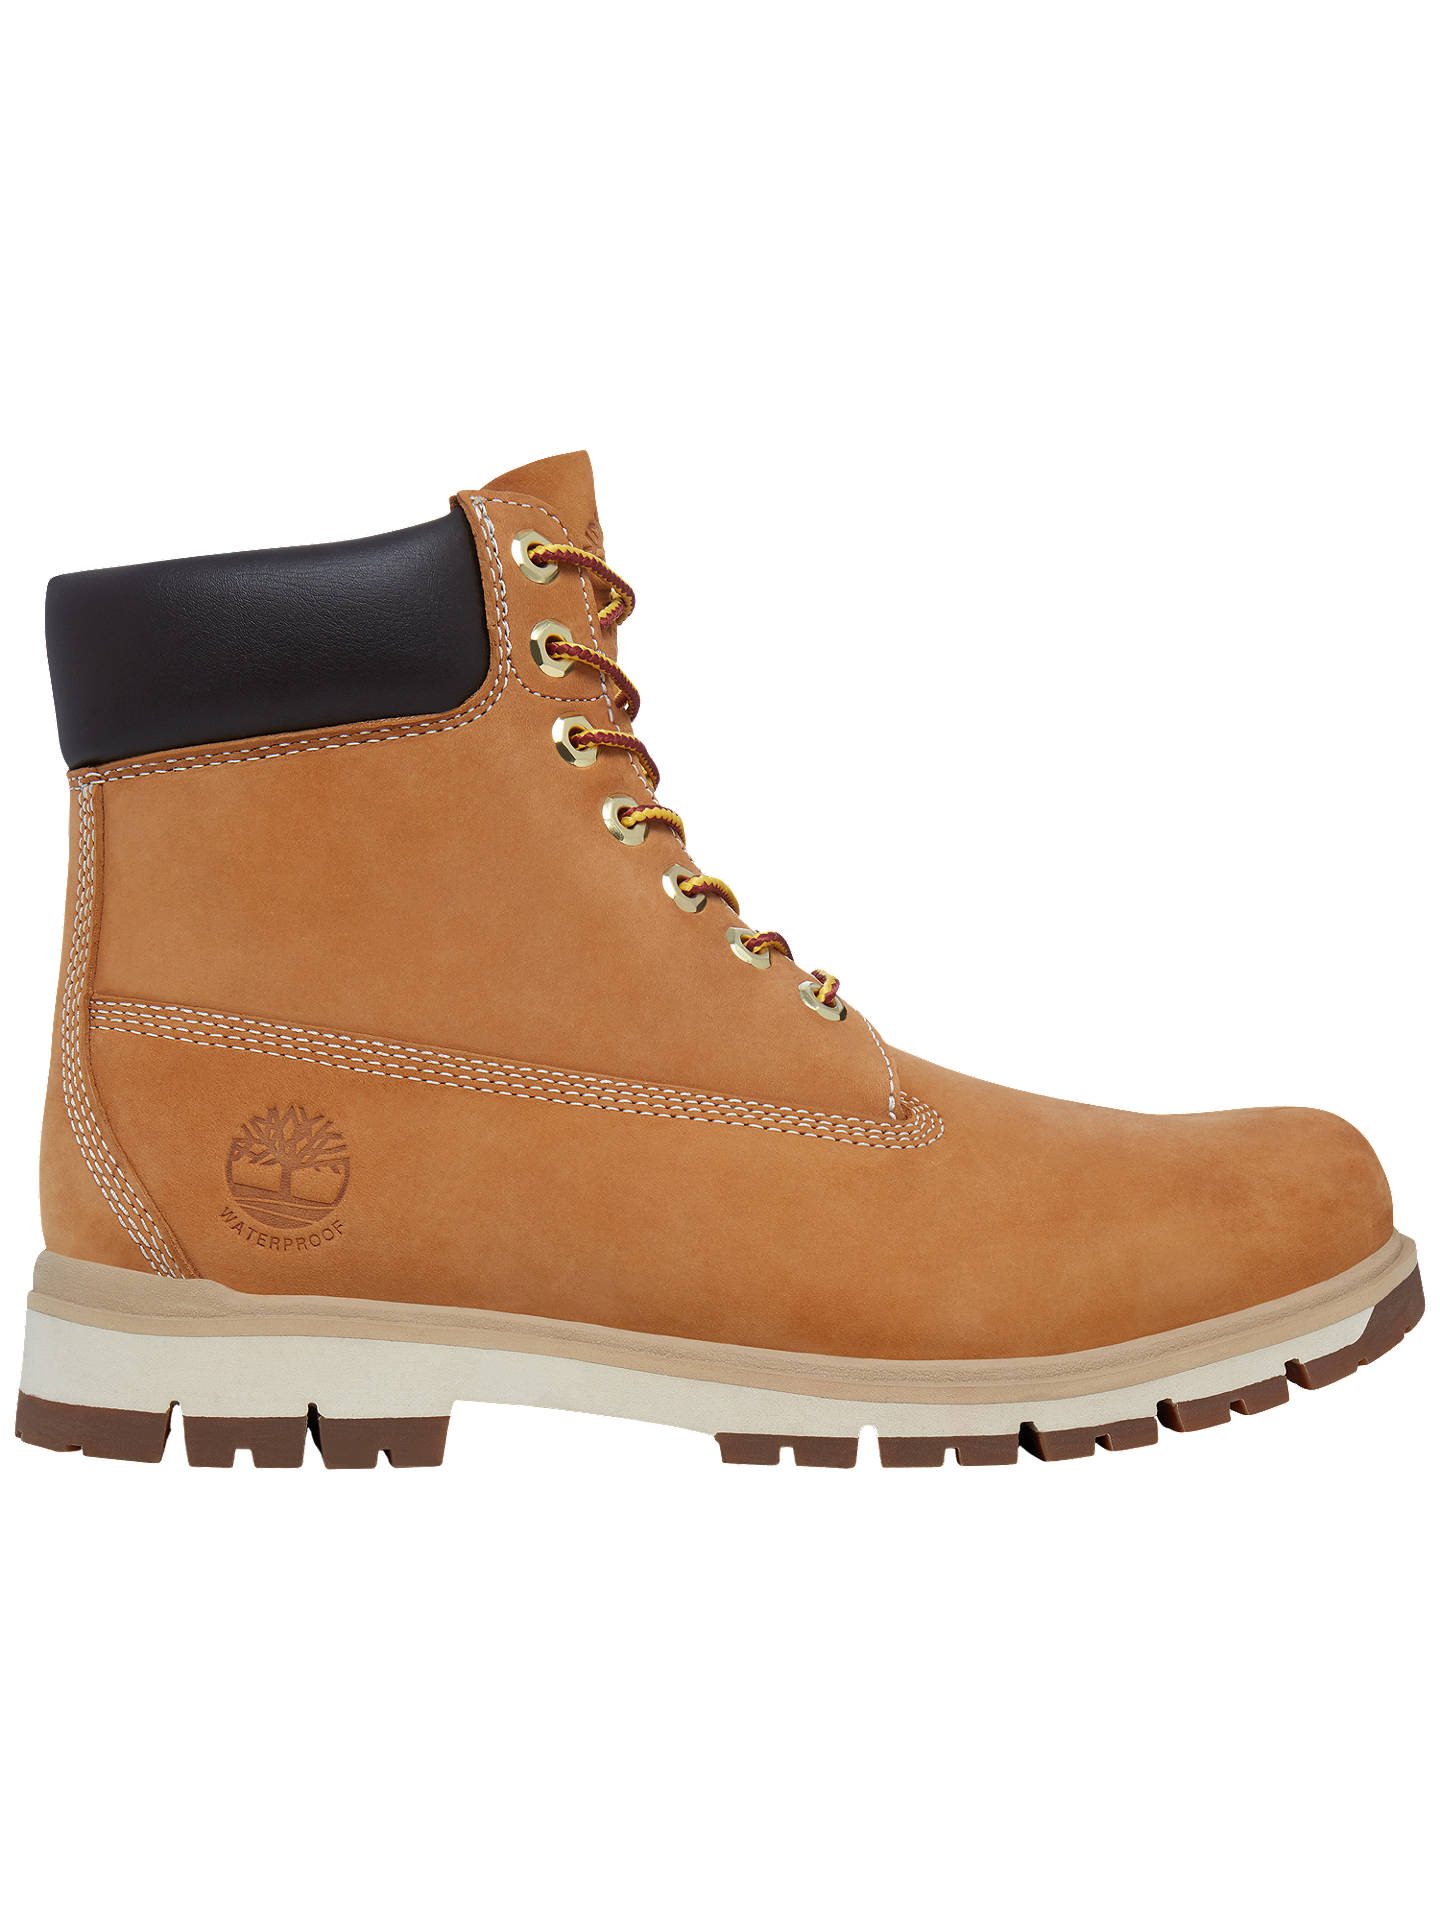 Timberland Radford 6 Inch Waterproof Boots, Wheat at John